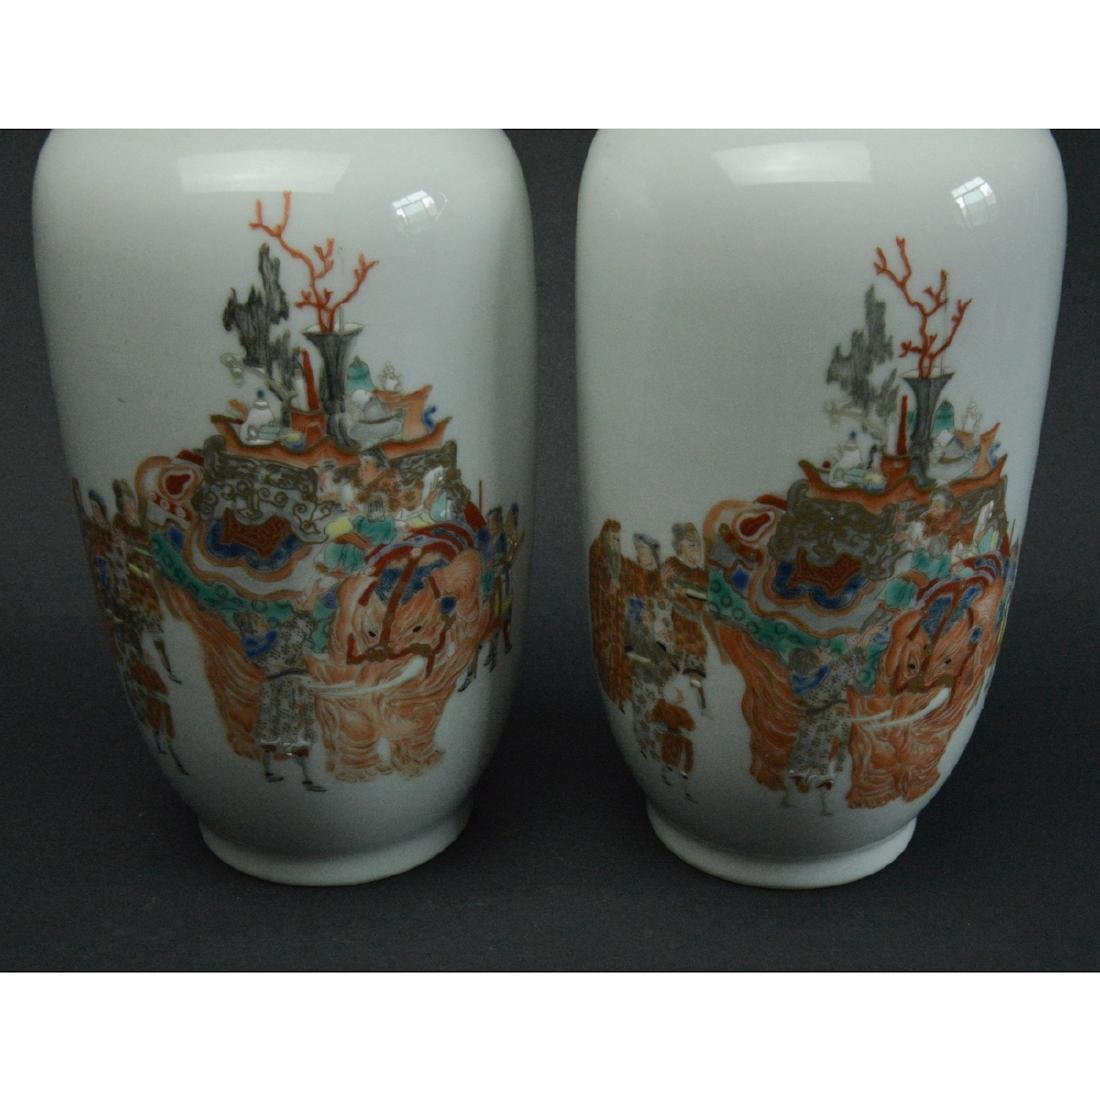 CHINESE FAMILLE ROSE PORCELAIN VASES, PAIR - 5